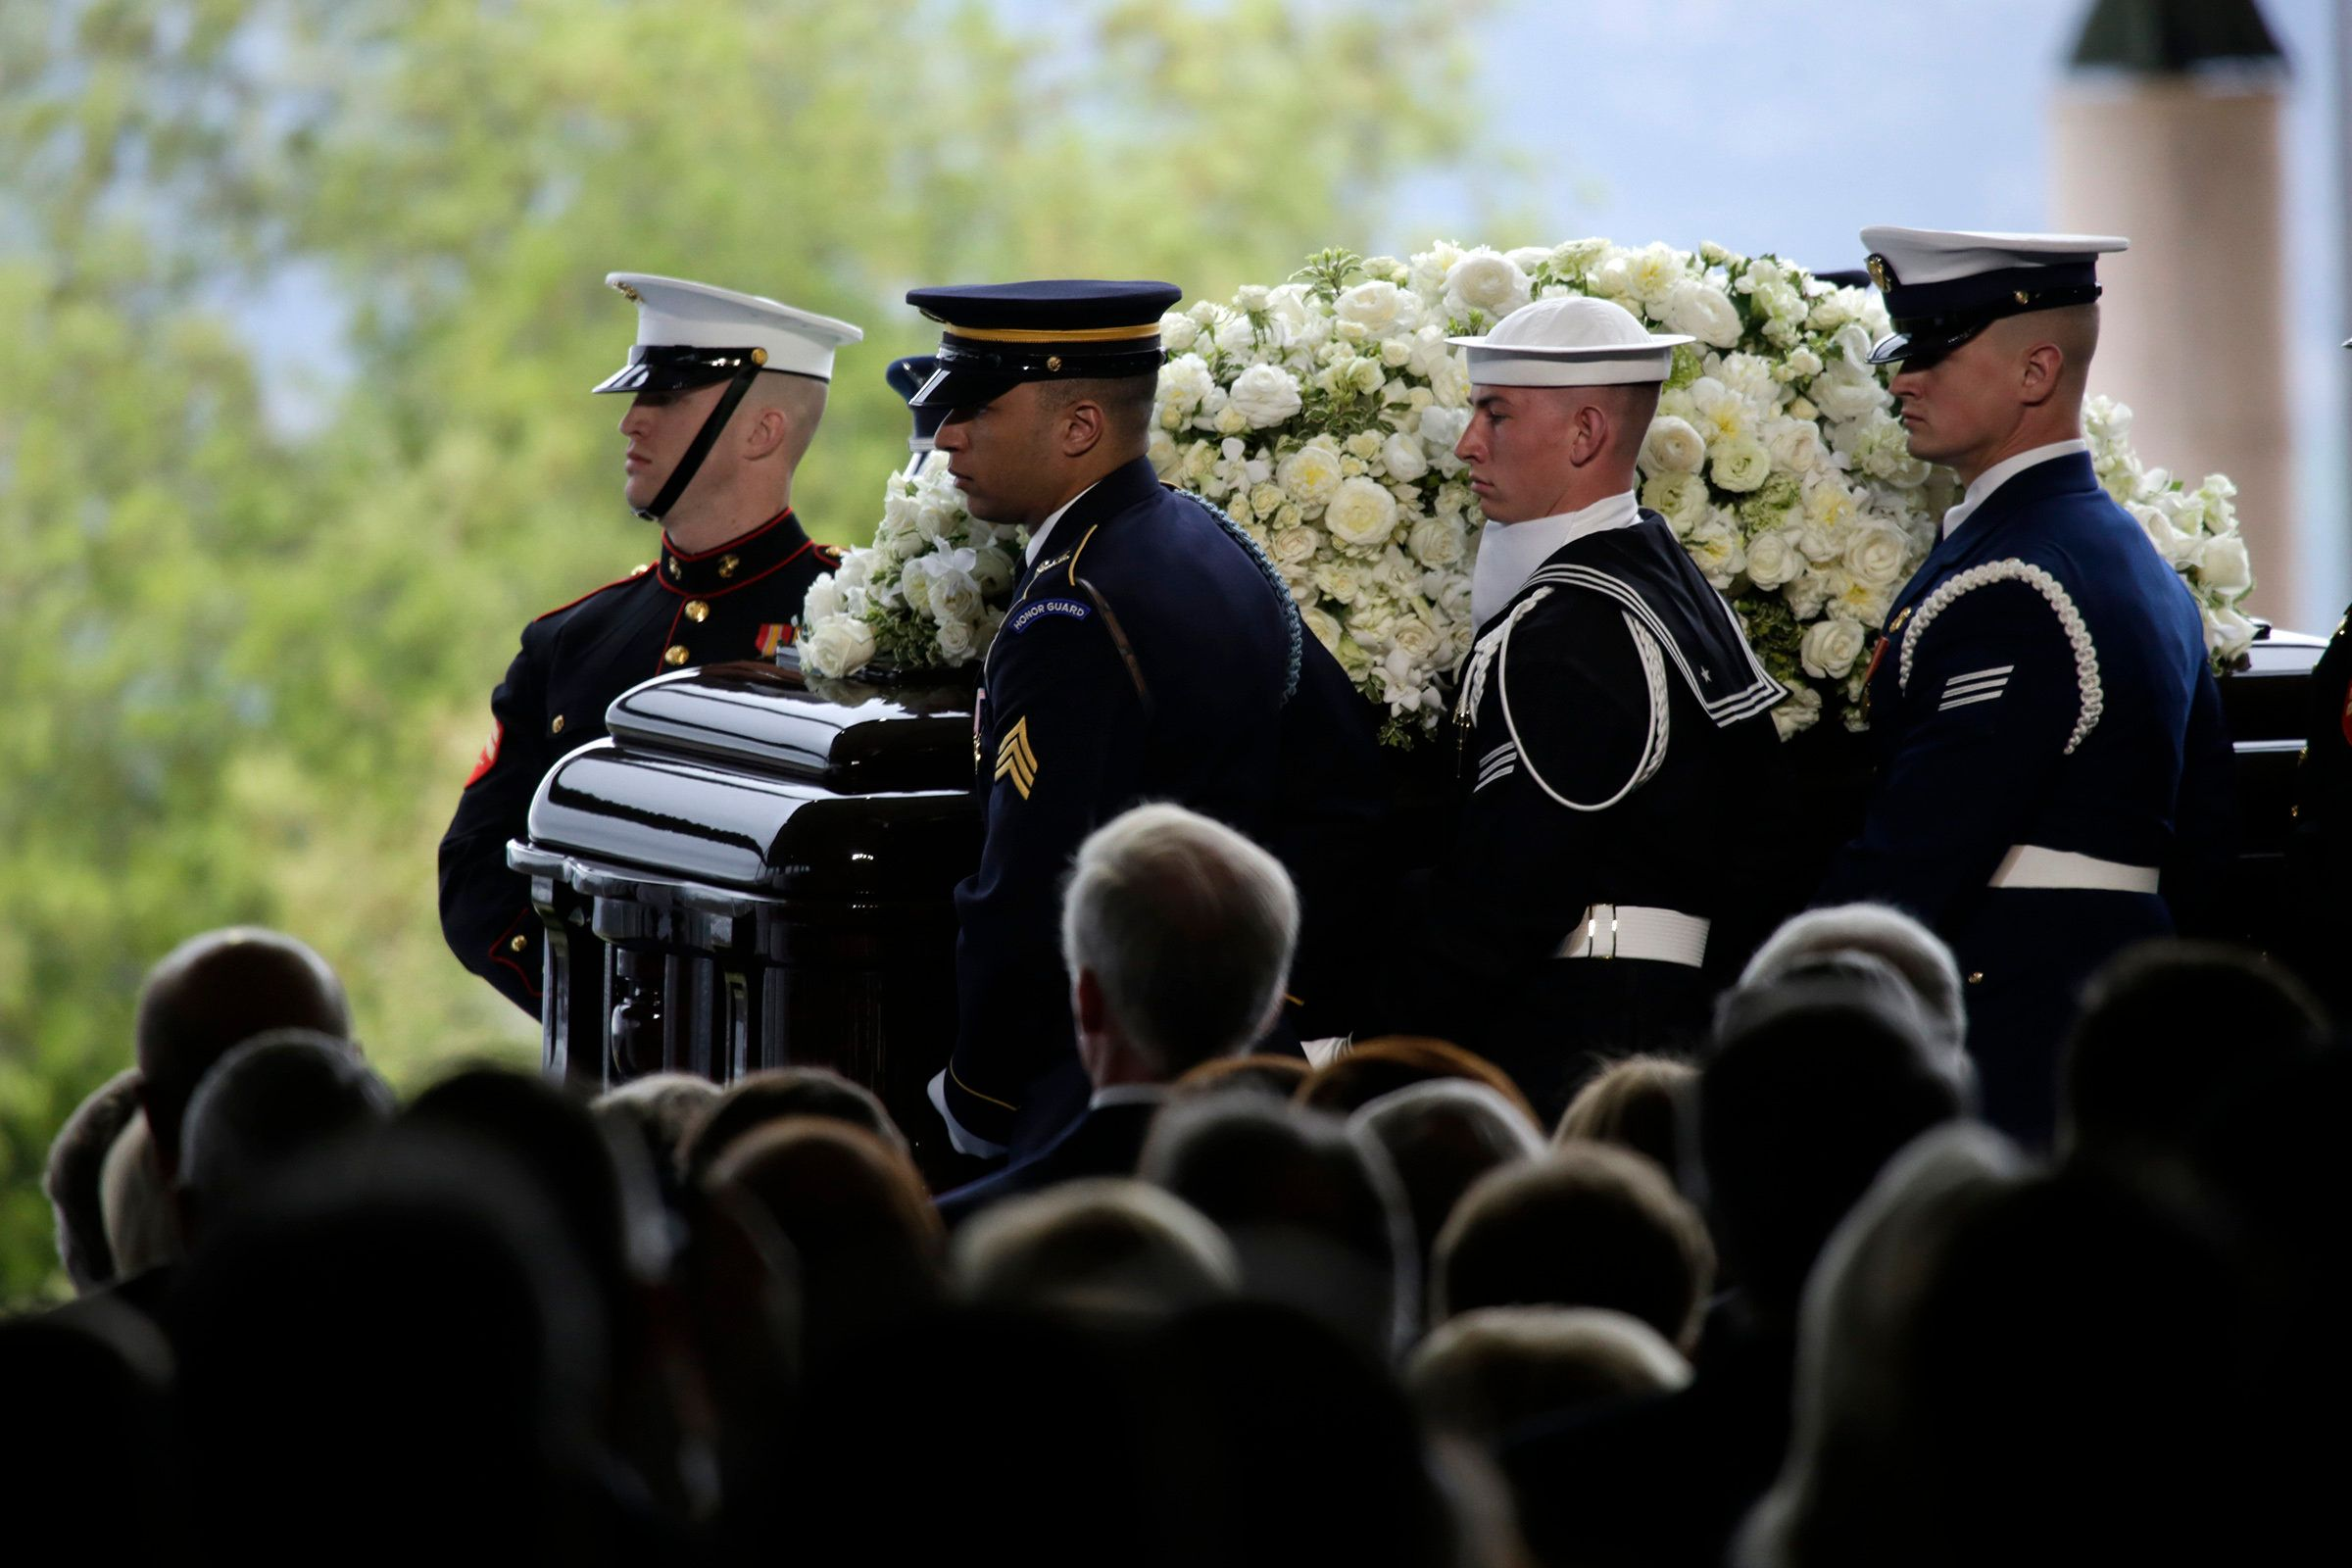 SIMI VALLEY, CA - MARCH 11: The casket carrying Nancy Reagan arrives for the funeral service at  the Ronald Reagan Presidential Library March 11, 2016 in Simi Valley, California. (Photo by Irfan Khan/Los Angeles Times via Getty Images)